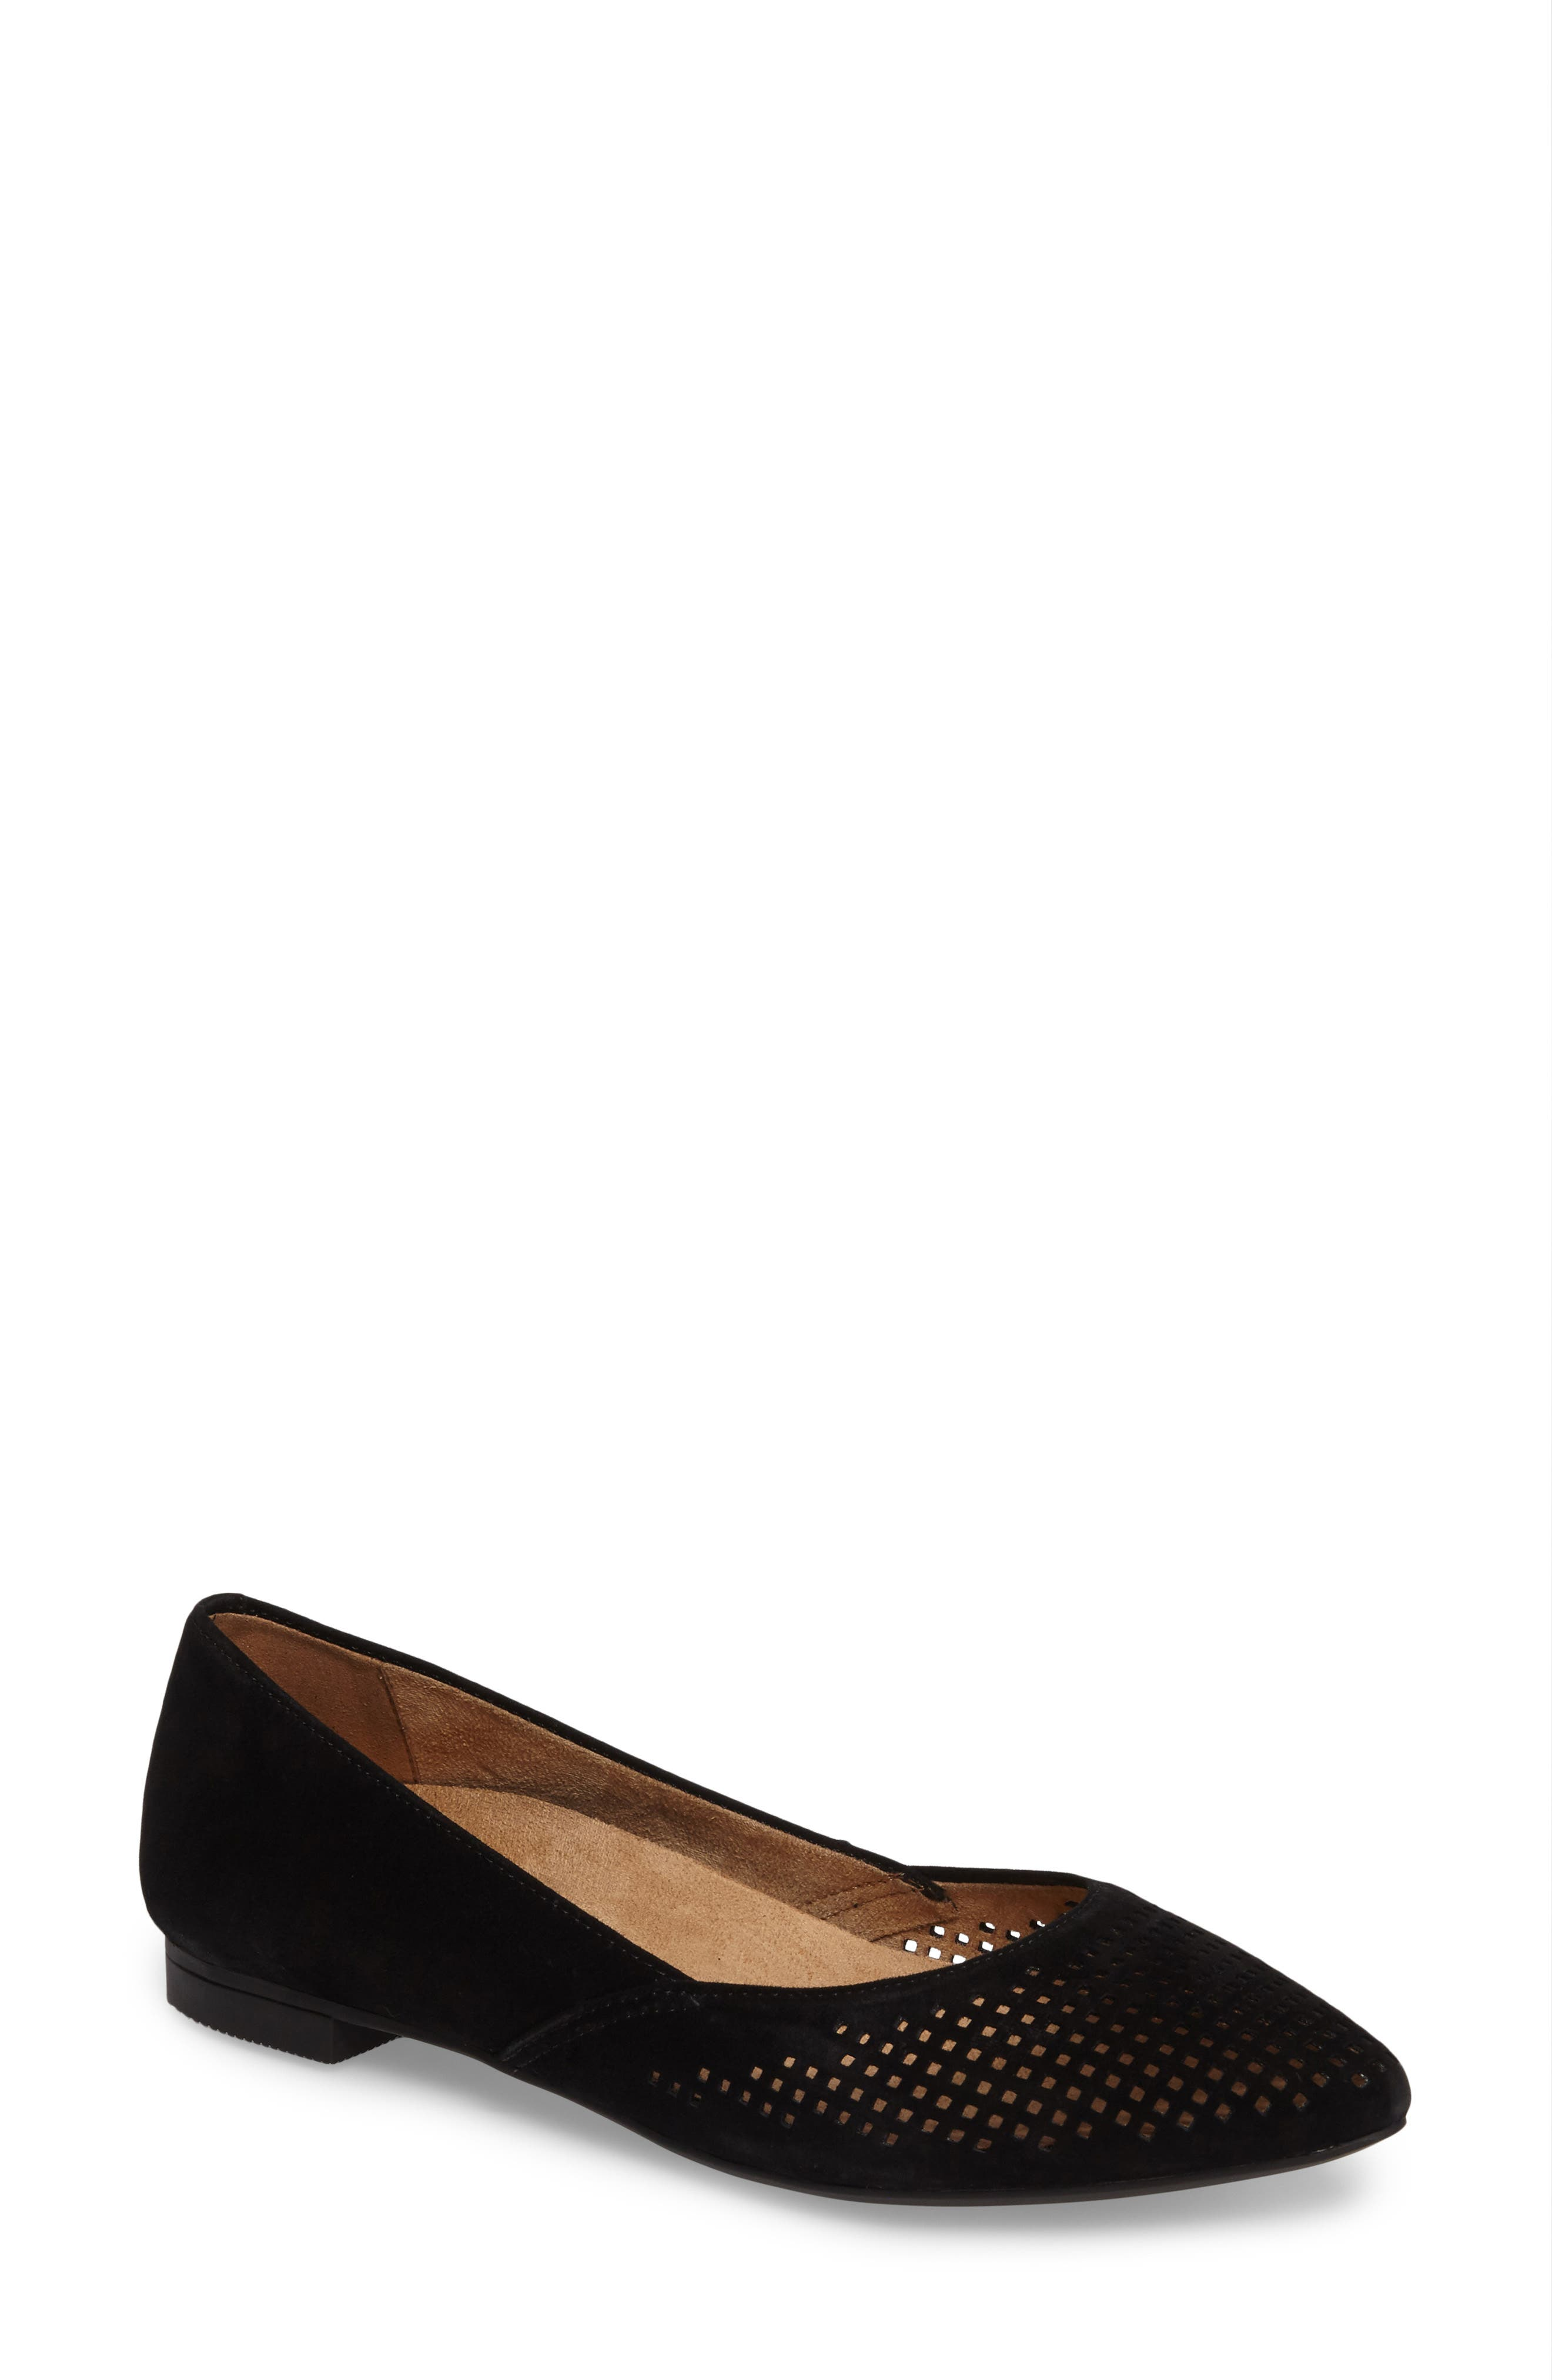 Posey Flat,                             Main thumbnail 1, color,                             Black Suede